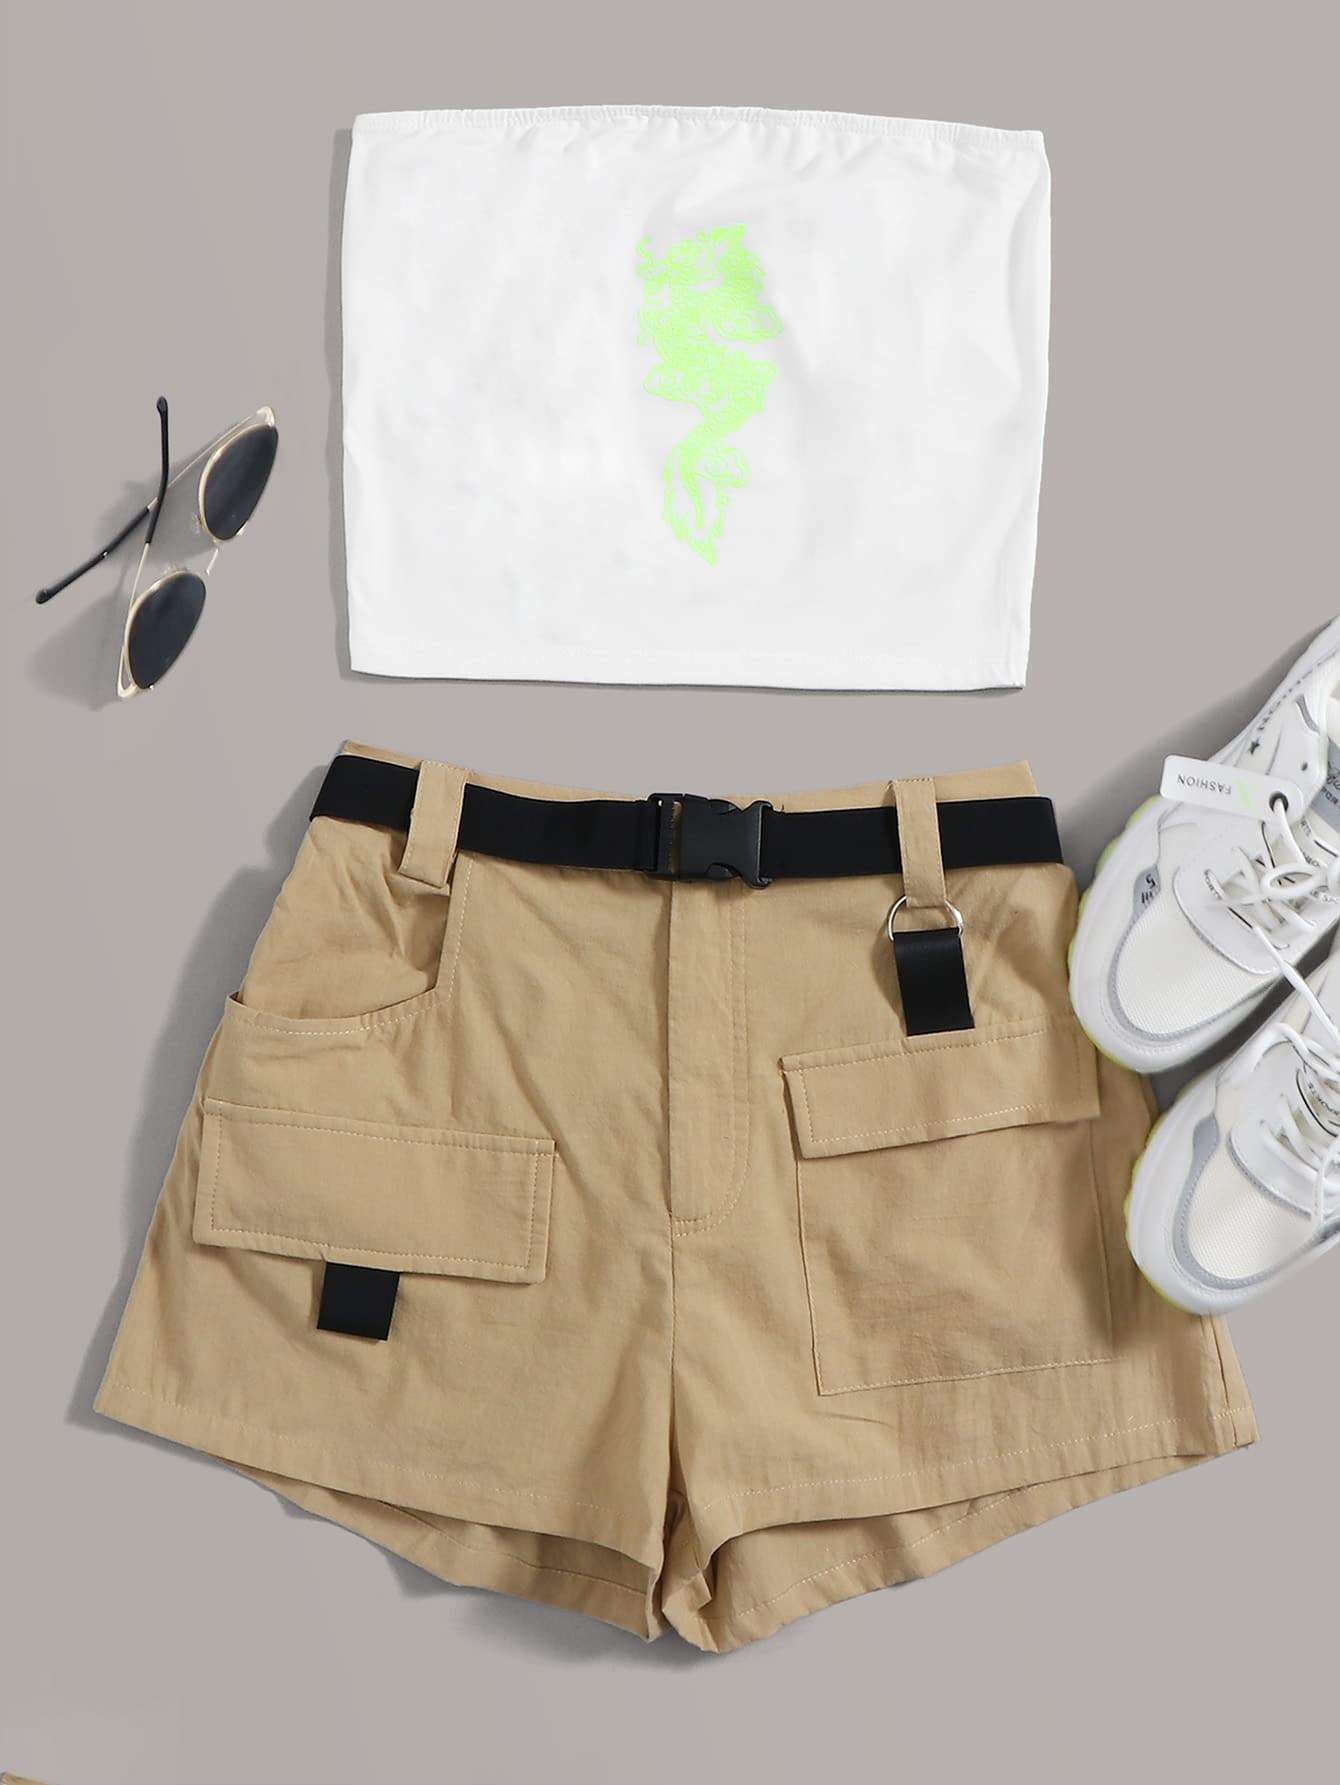 Dragon Bandeau & Pocket Patched Shorts Set With Buckle Belt - FLJ CORPORATIONS